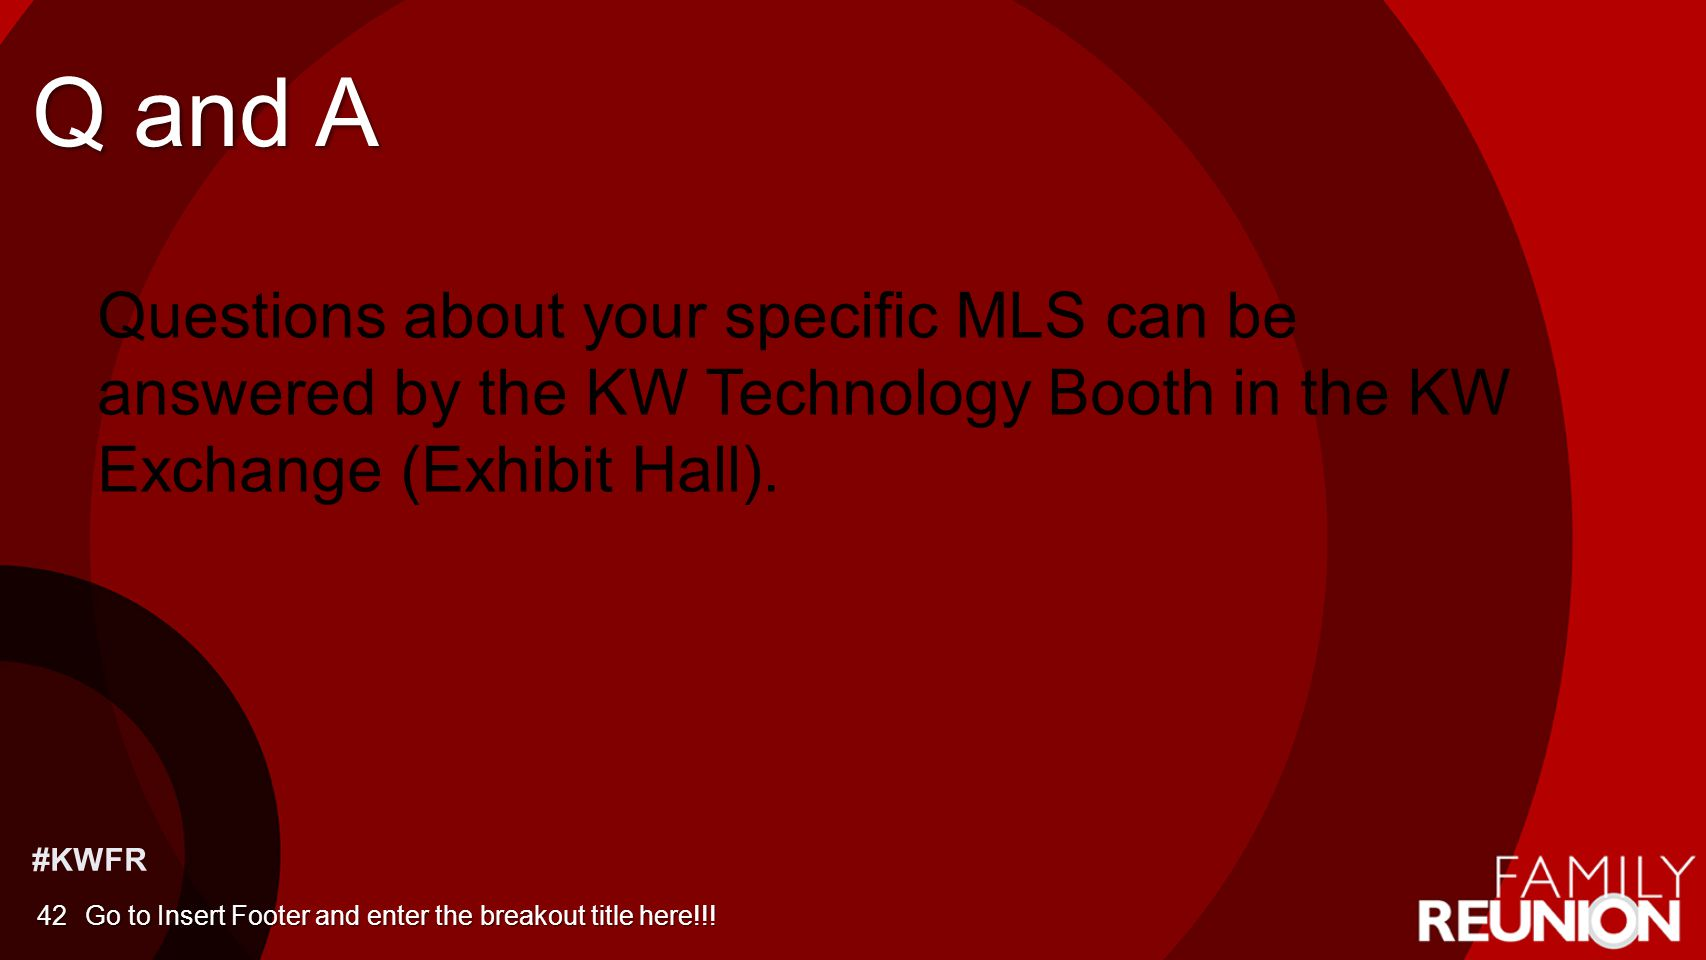 Q and A Questions about your specific MLS can be answered by the KW Technology Booth in the KW Exchange (Exhibit Hall).